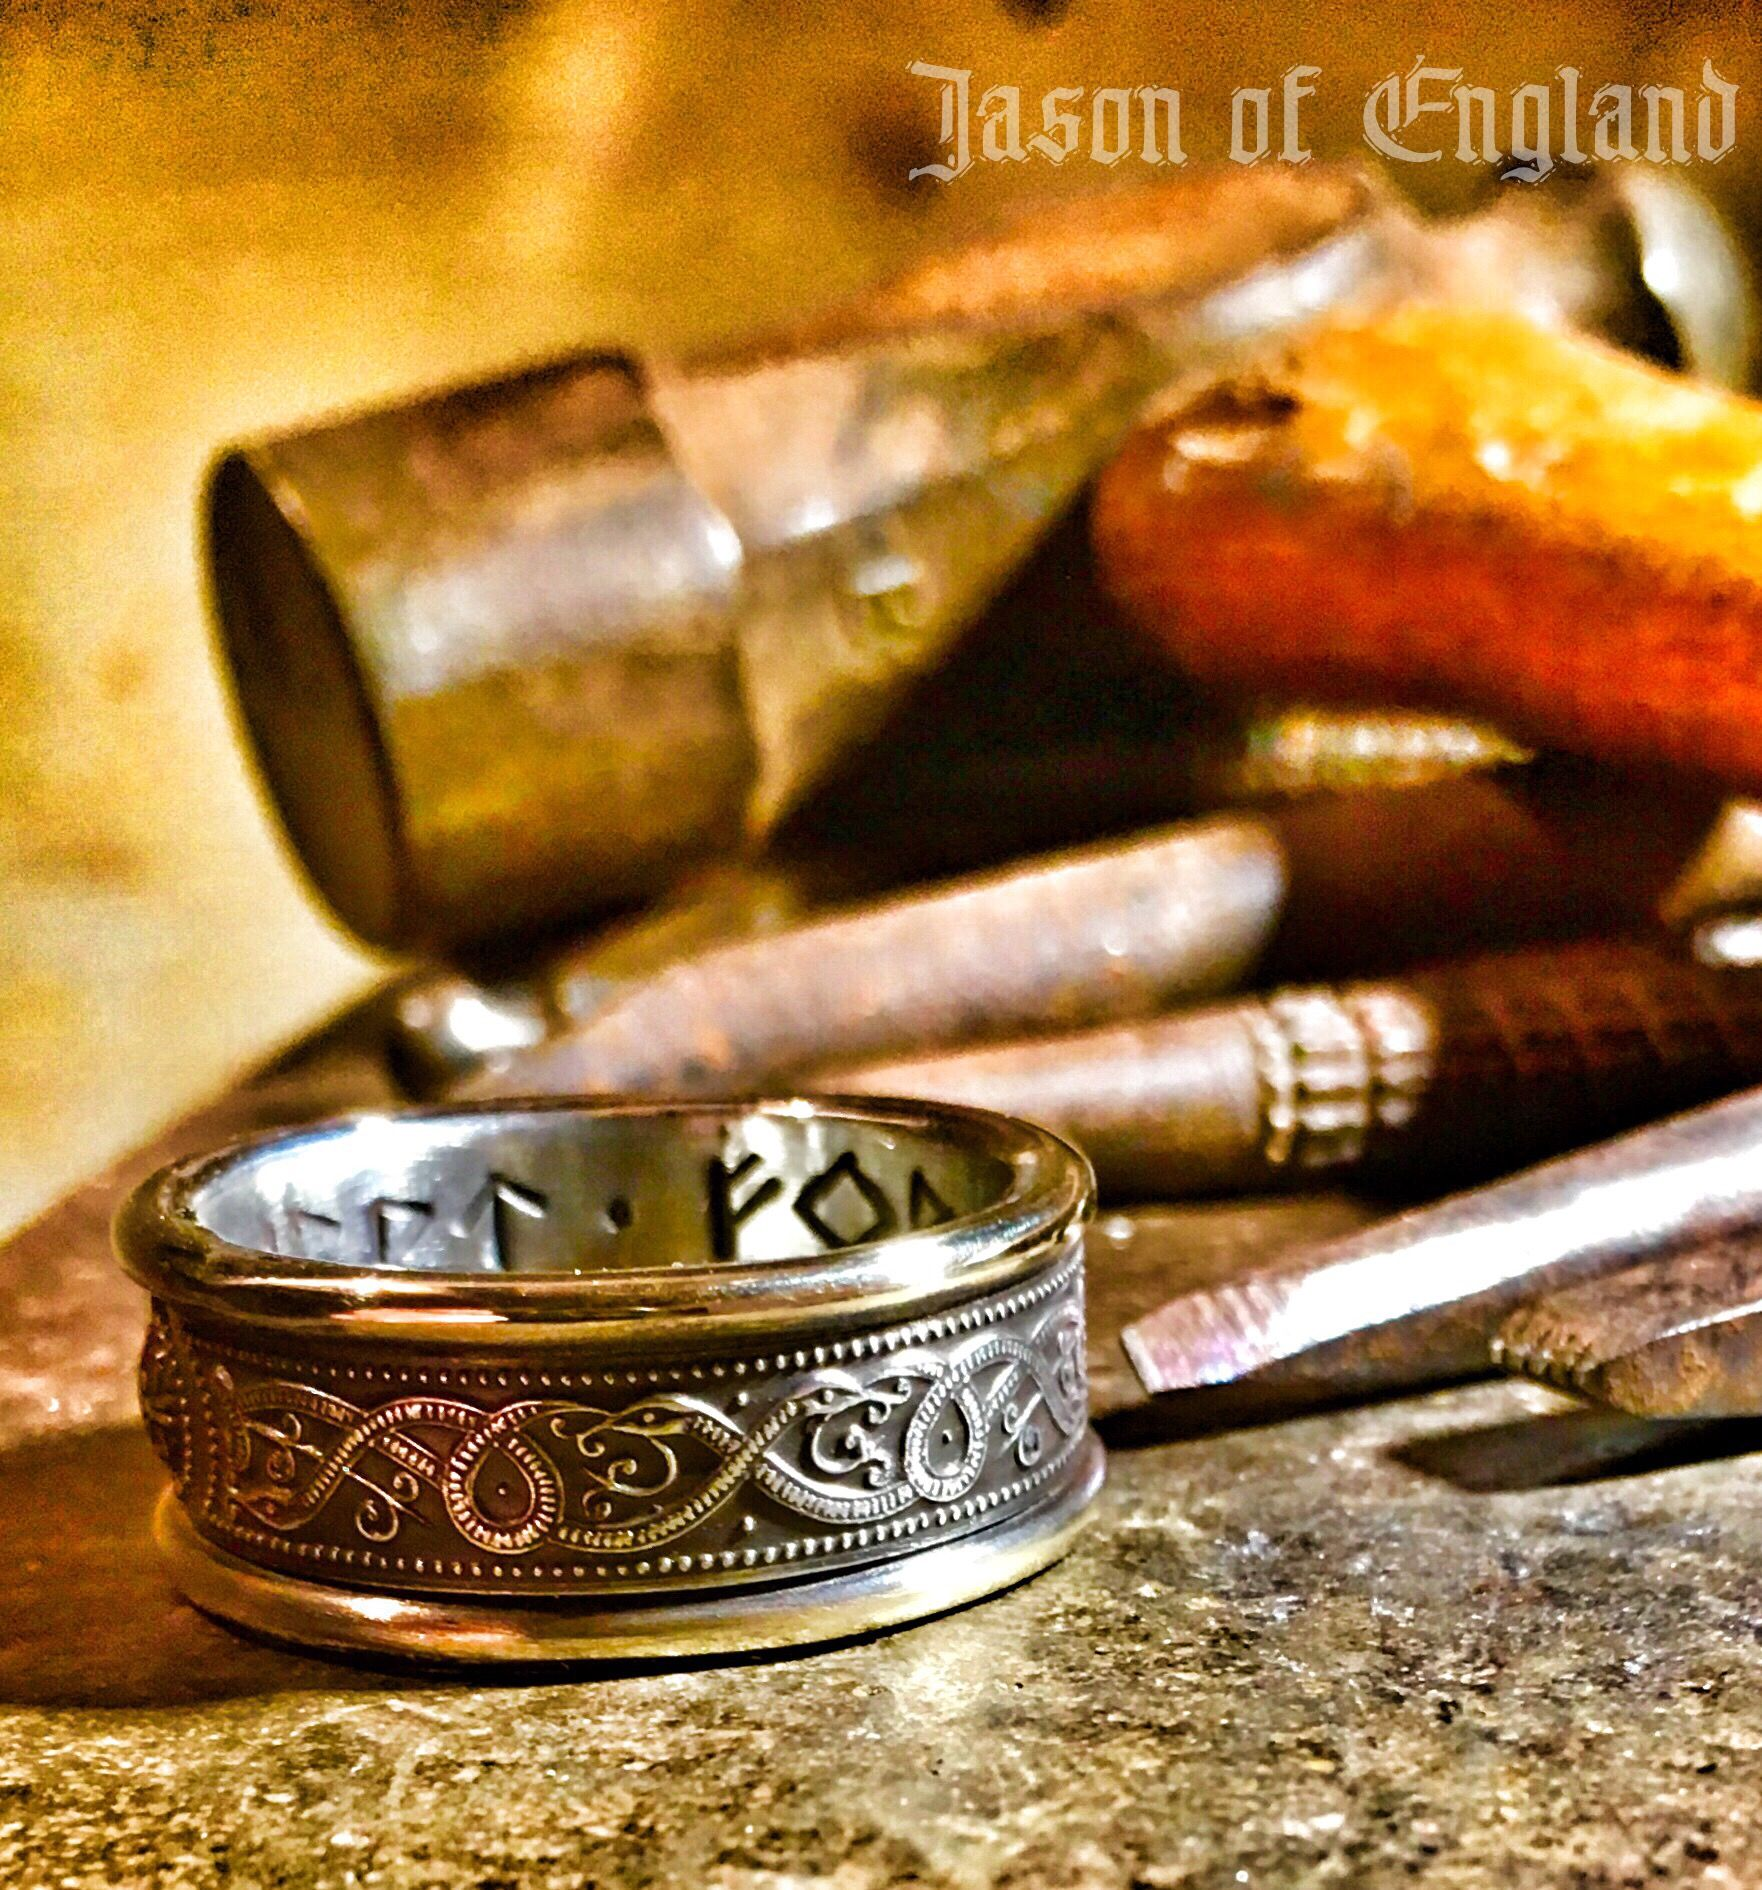 On my anvil, today... Silver and Gold Serpent ring with